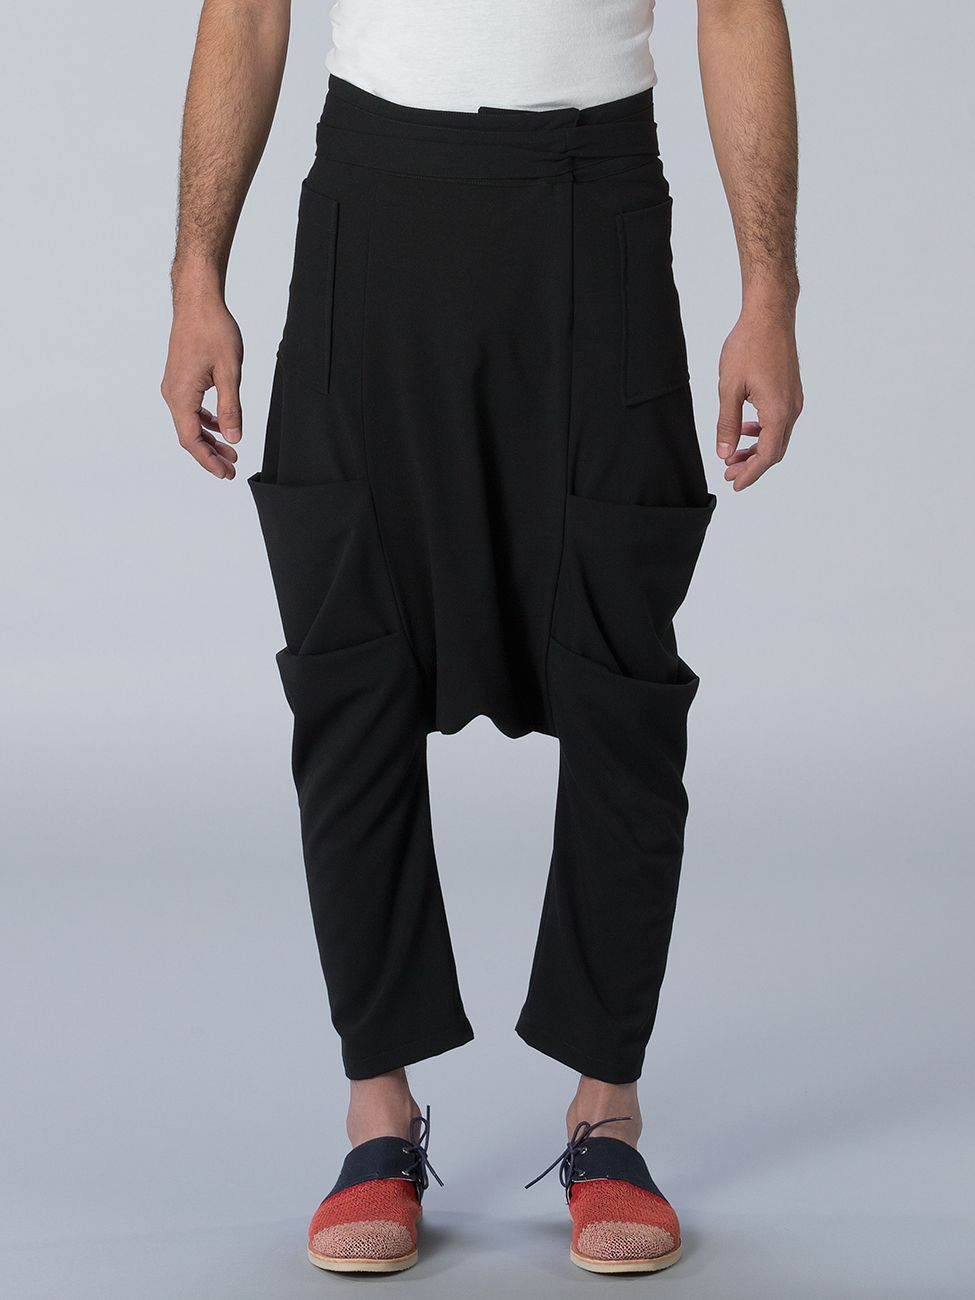 Atlas Trousers | Carla Fernández | NOT JUST A LABEL